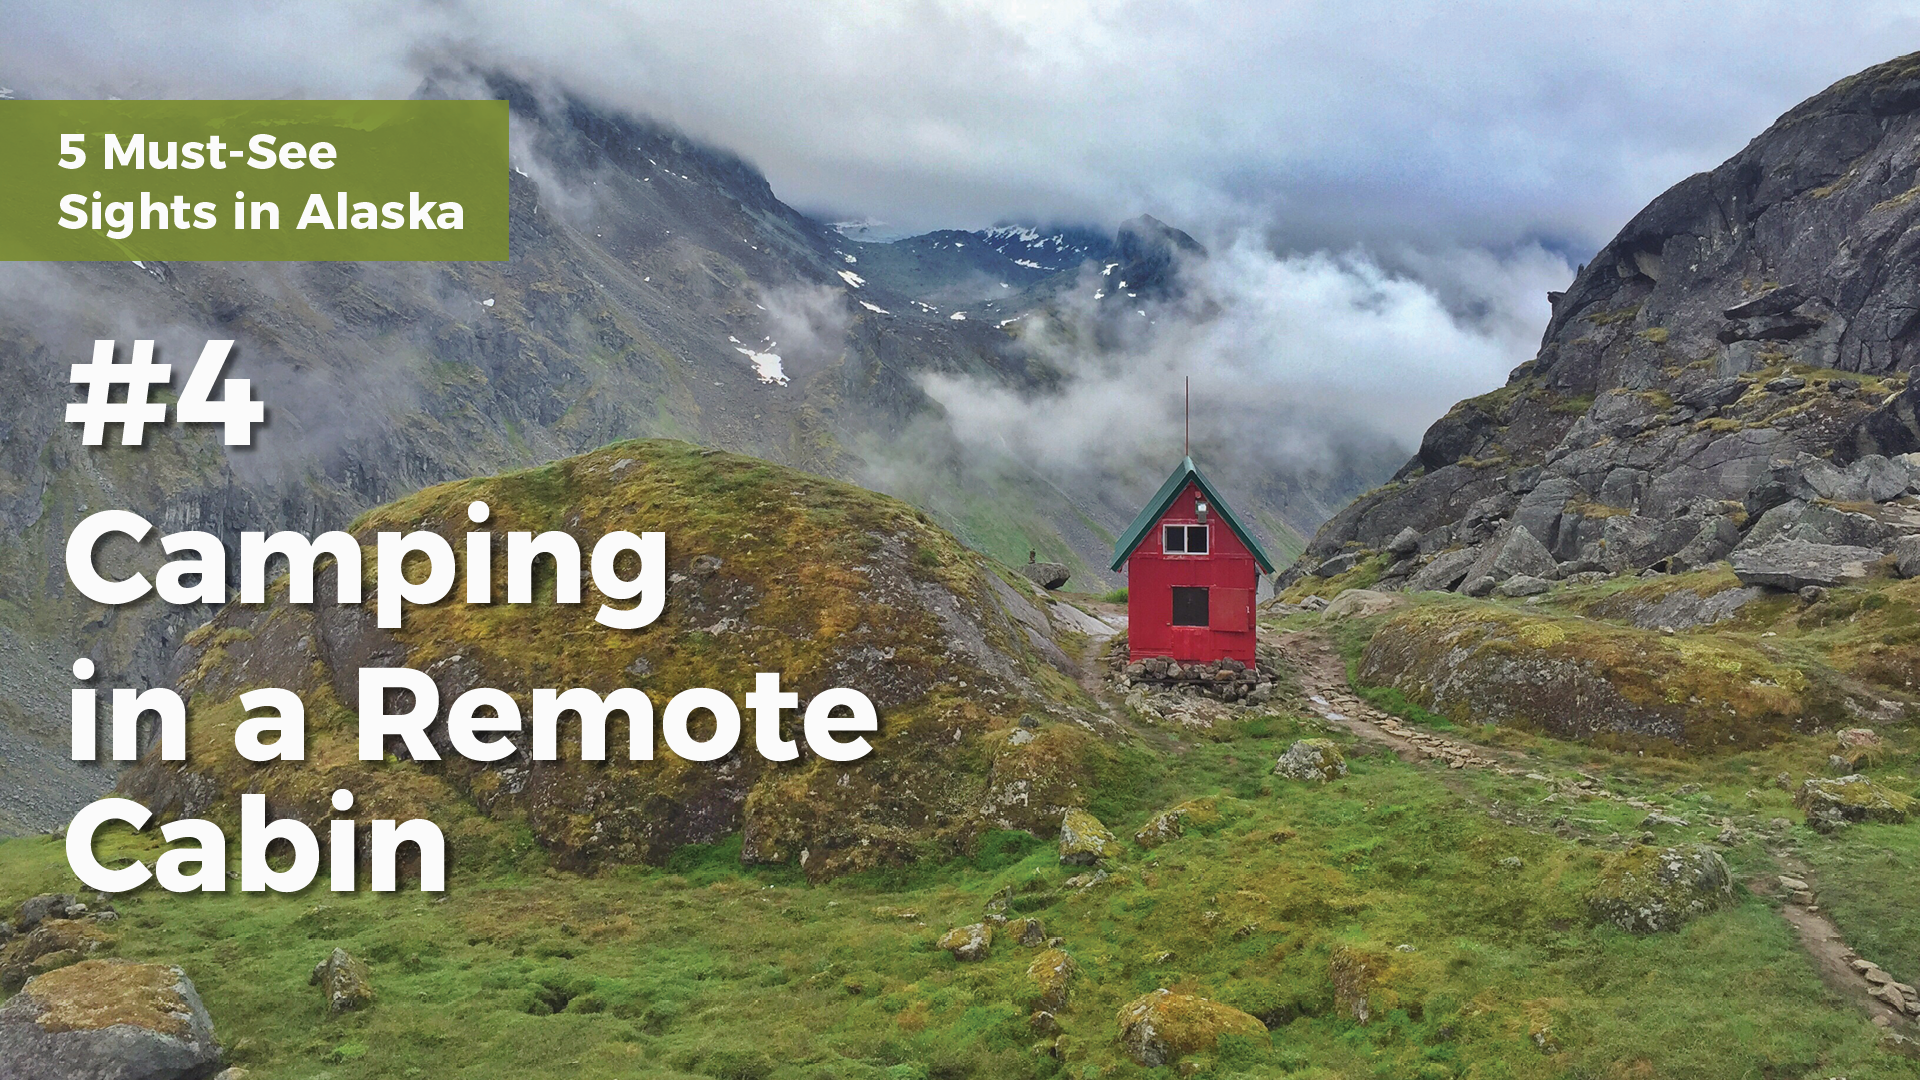 5-must-see-sights-in-alaska-camping-in-a-remote-cabin